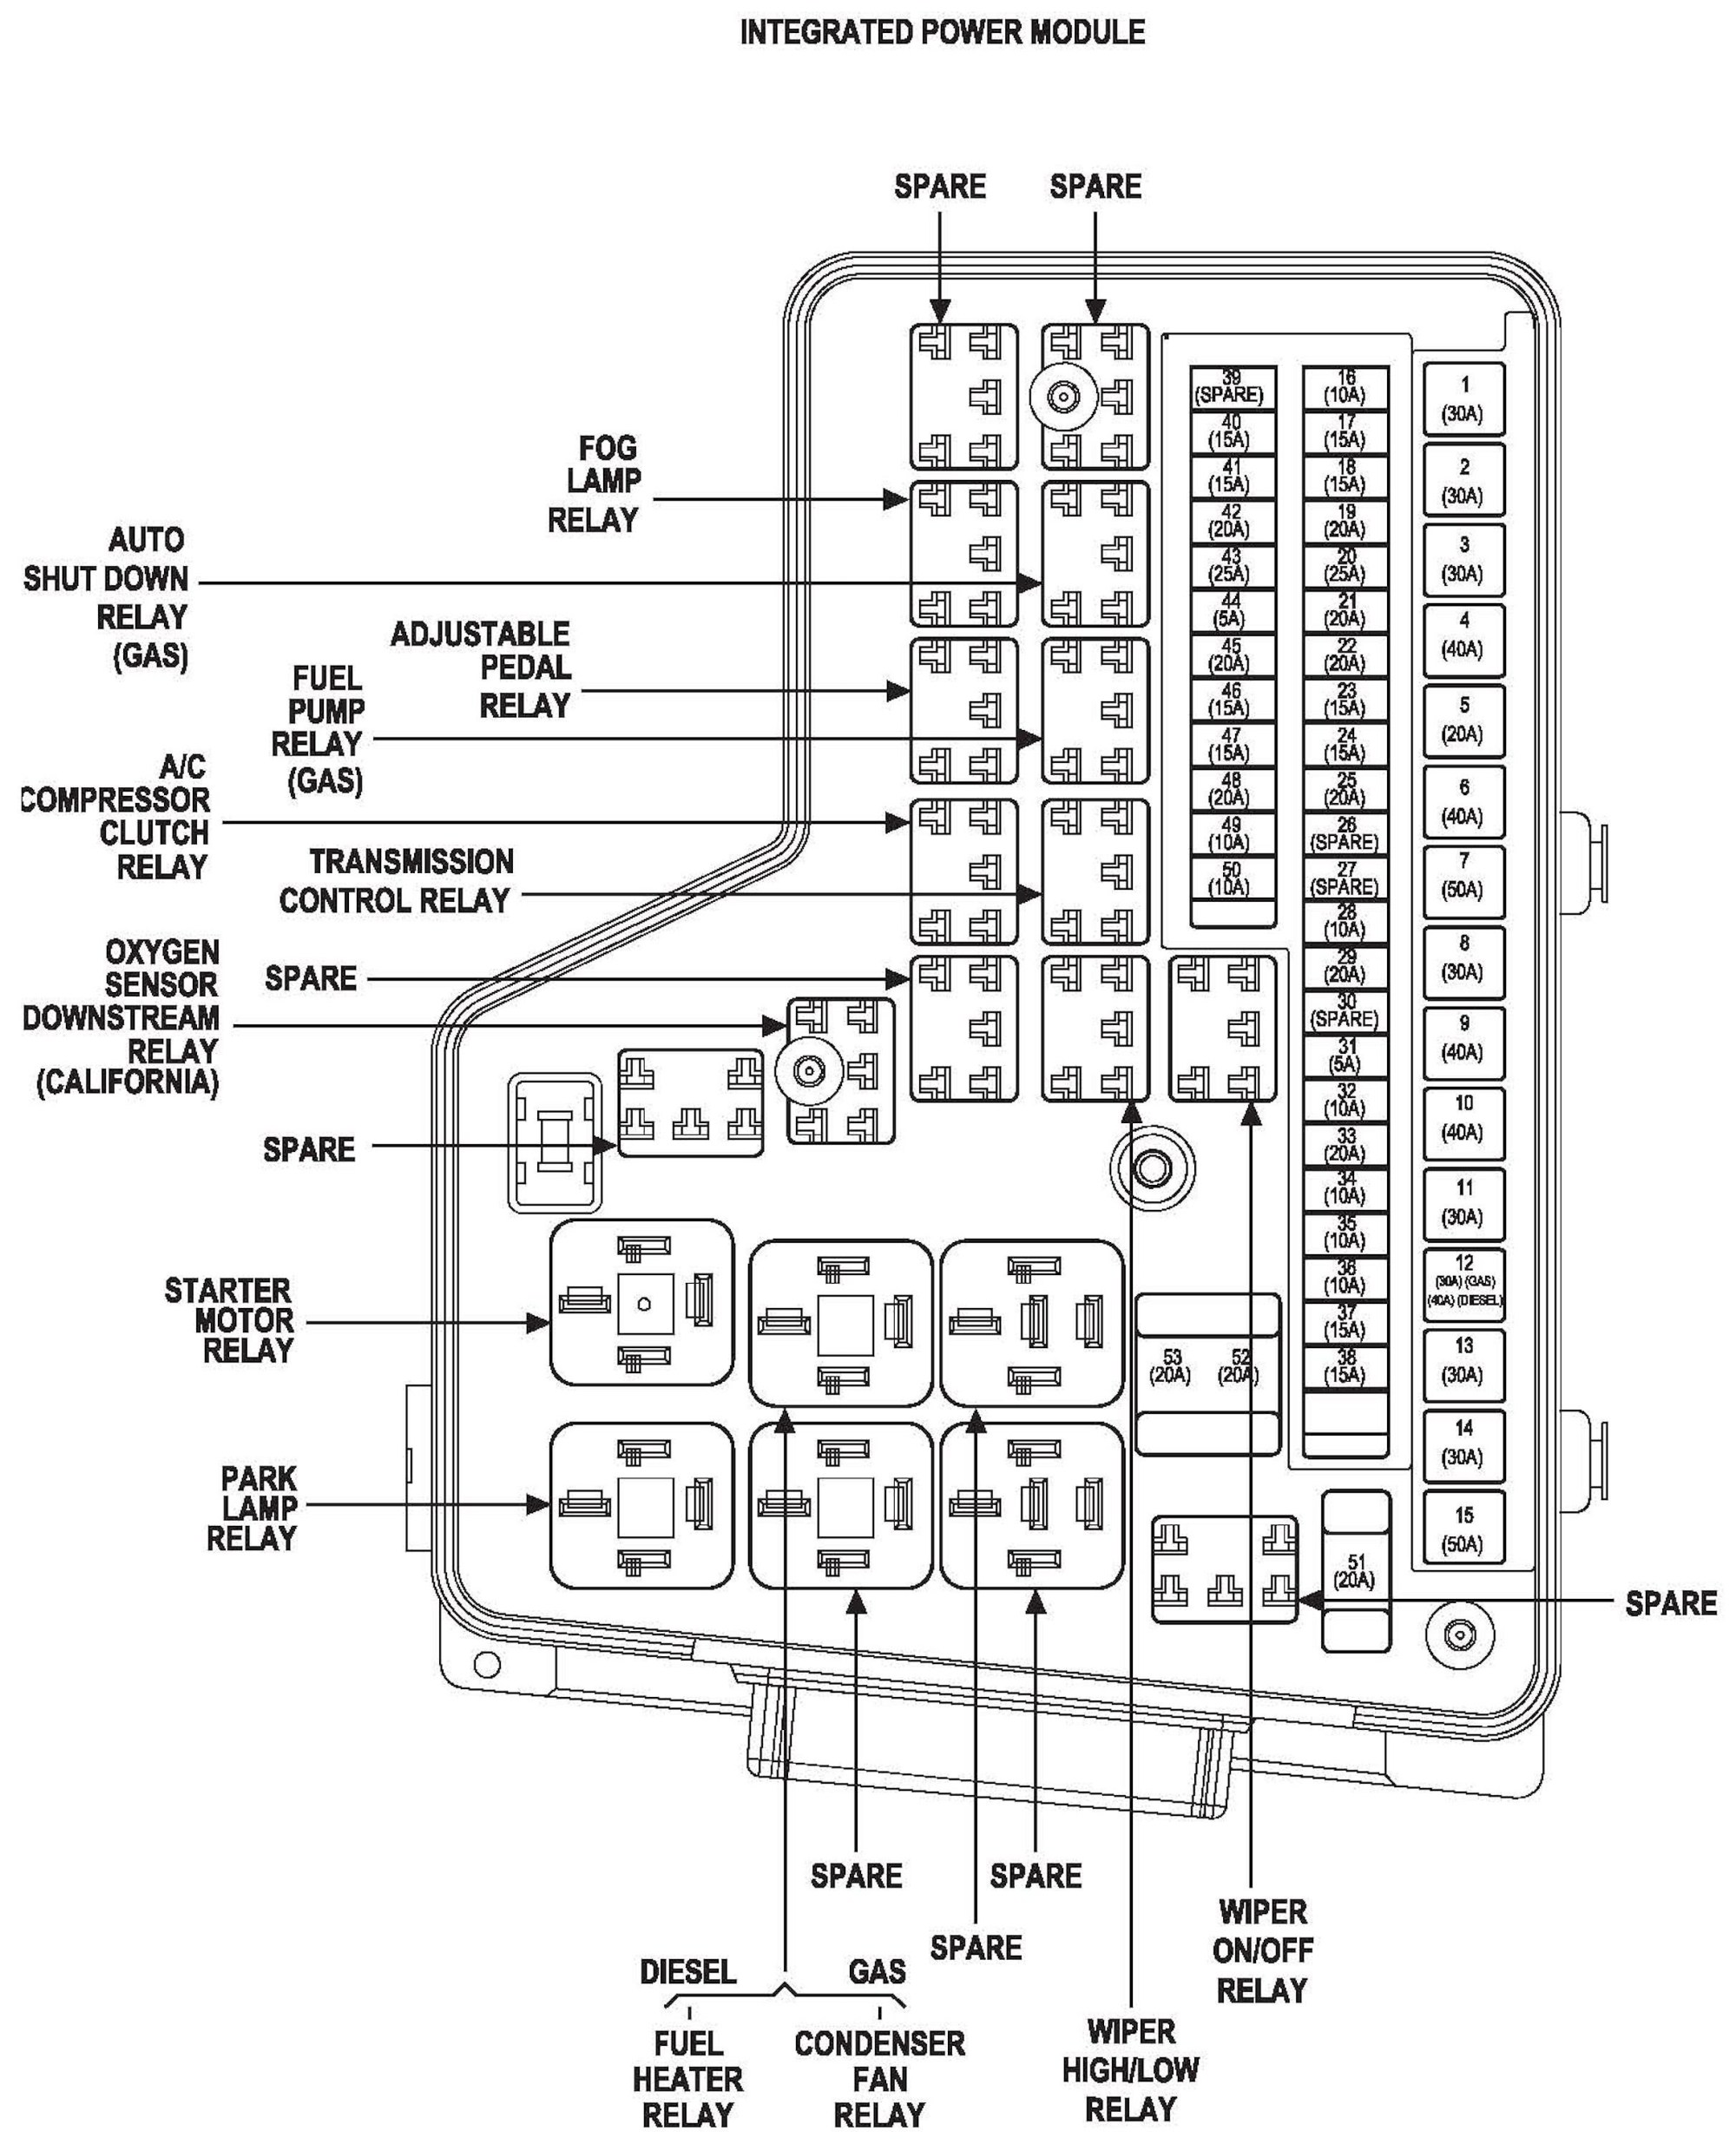 hight resolution of 2004 dodge ram 2500 fuse diagram wiring diagram expert 2004 dodge caravan fuse box location 2004 dodge fuse box